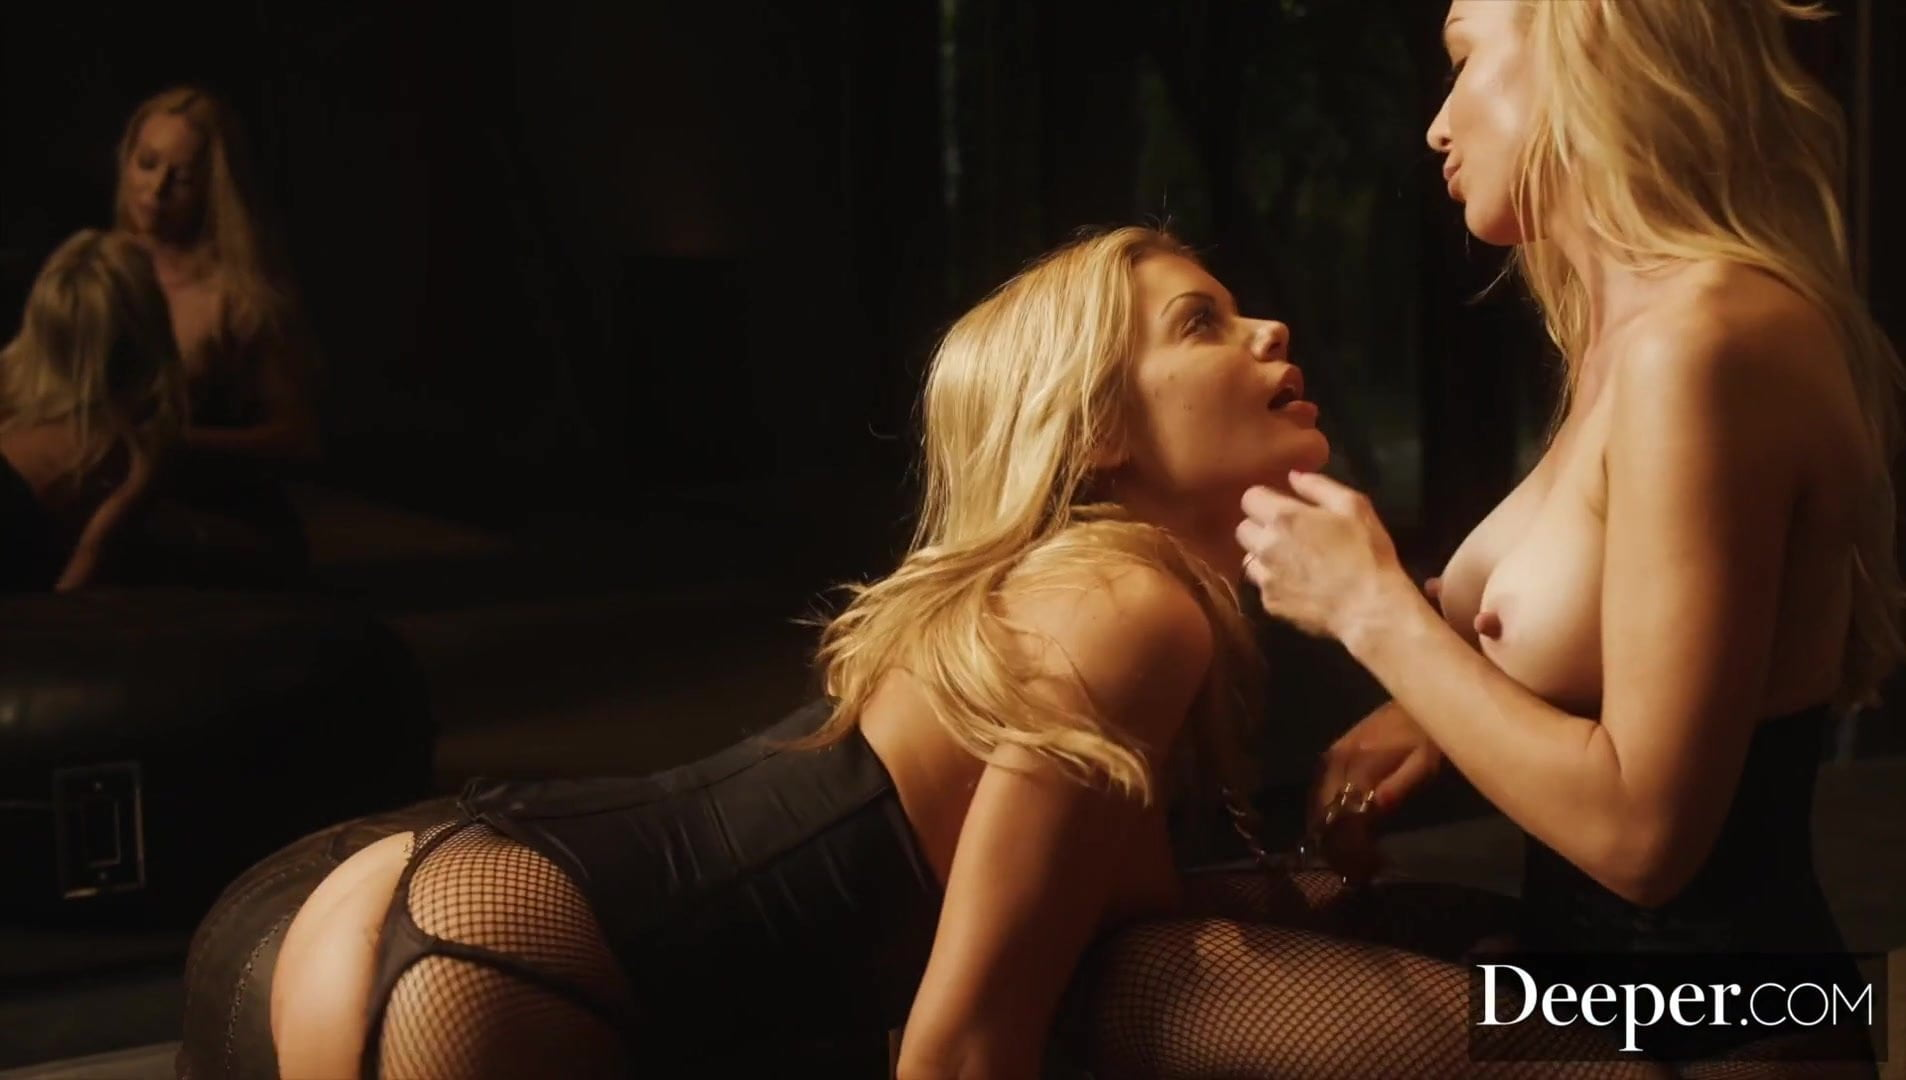 Deeper. Outer Limits for Kayden Kross and Riley Steele